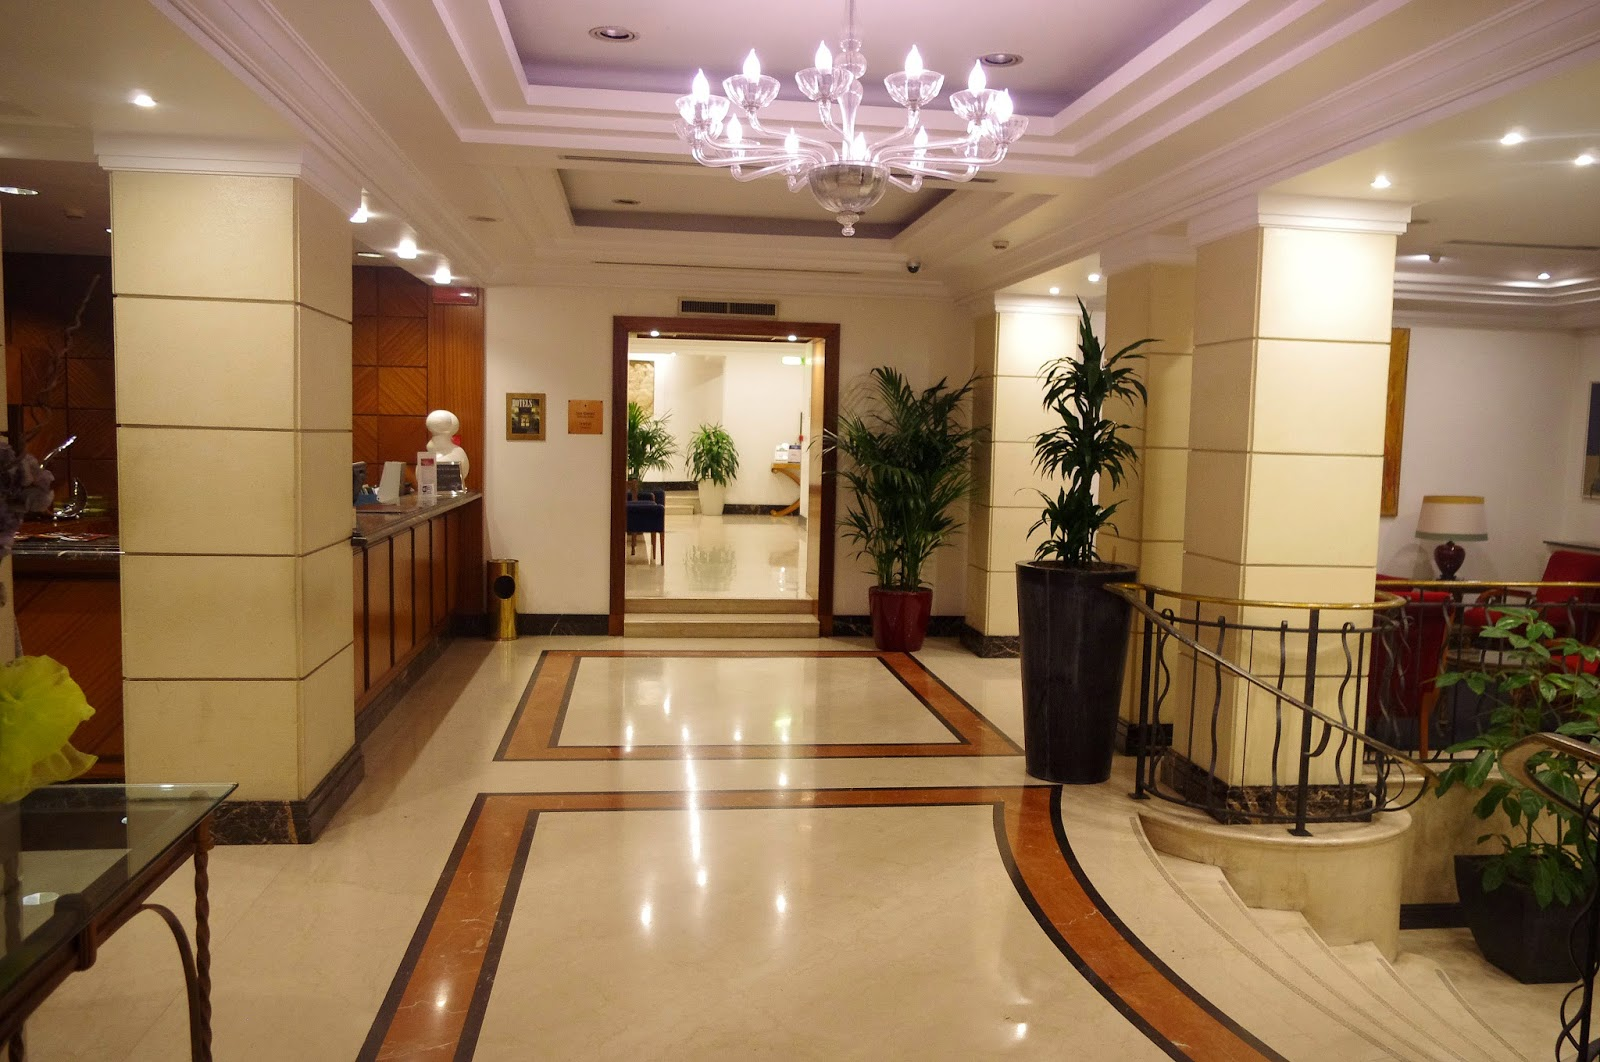 Hotel Foyer Hottingen Review : An elegant stay at hotel dei mellini rome the aussie